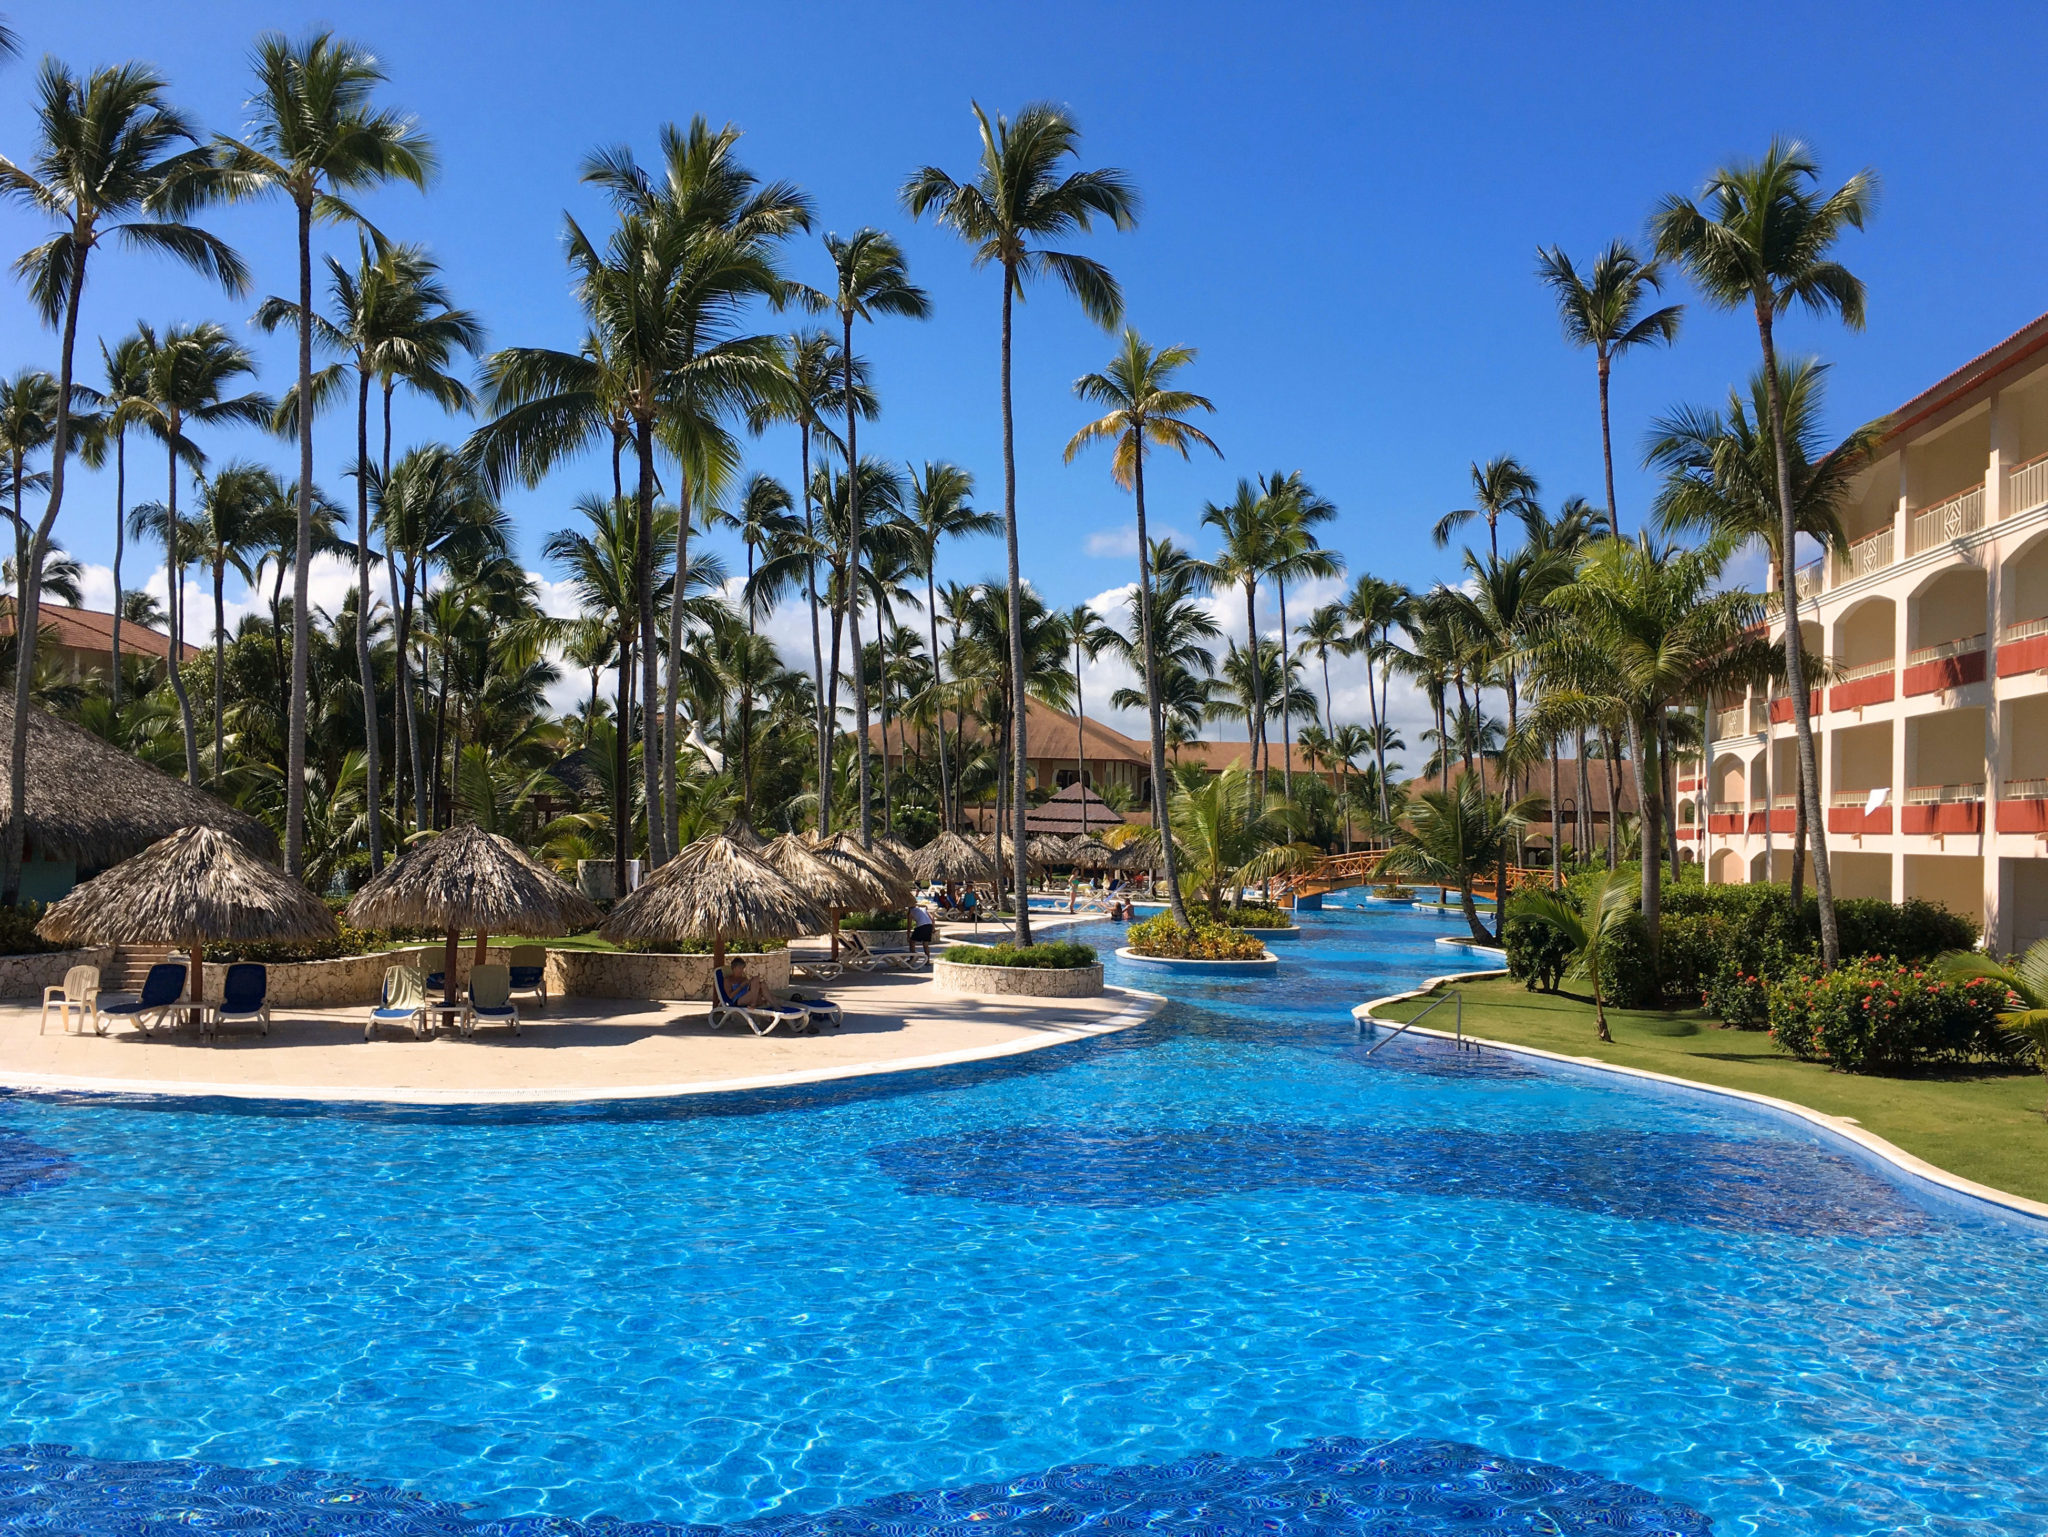 Majestic Colonial Punta Cana: One Week in Paradise